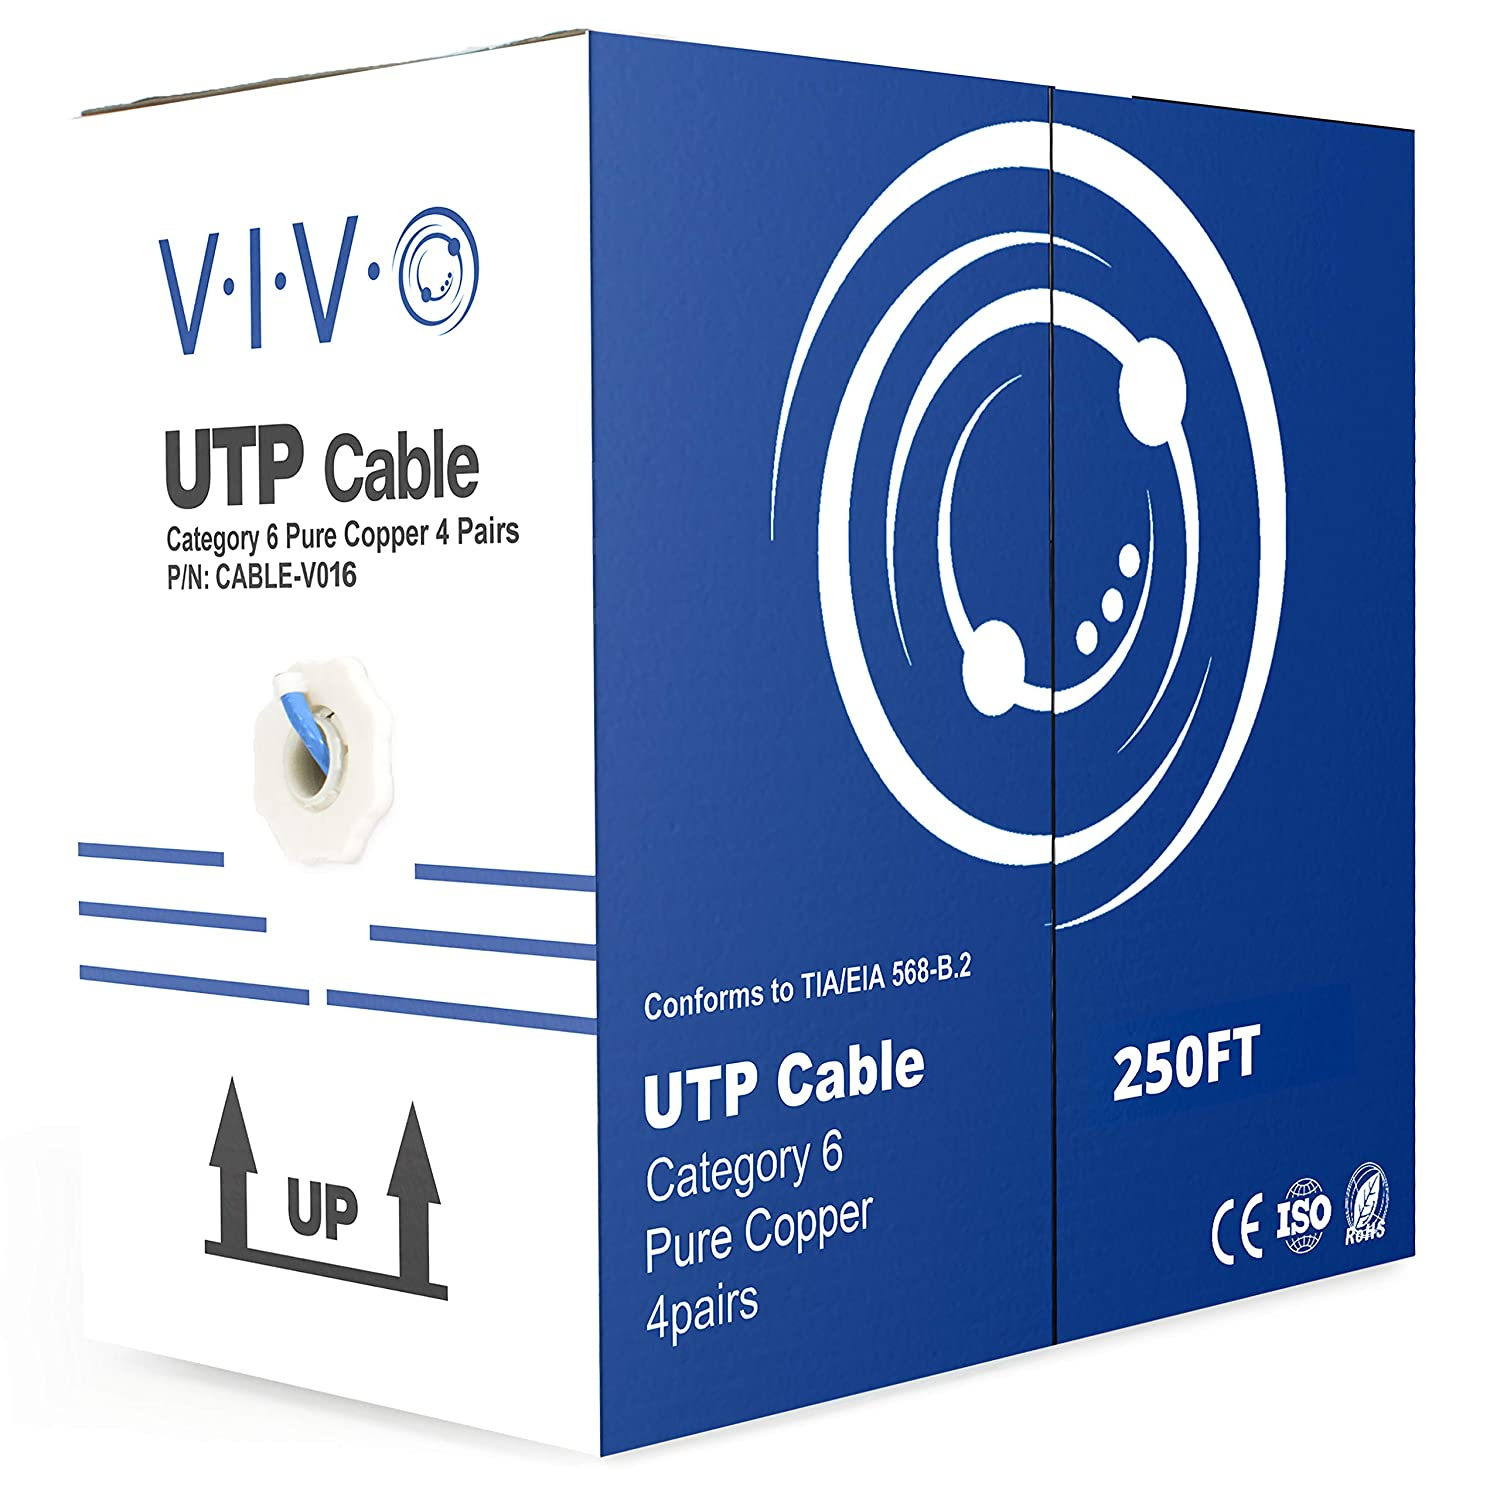 Vivo New Full Copper 1000 Ft Bulk Cat6 Ethernet Cable B Amp A Cat 6 Keystone Jack Wiring Diagram Wire Utp Pull Box 1000ft Grey V009 Computers Accessories